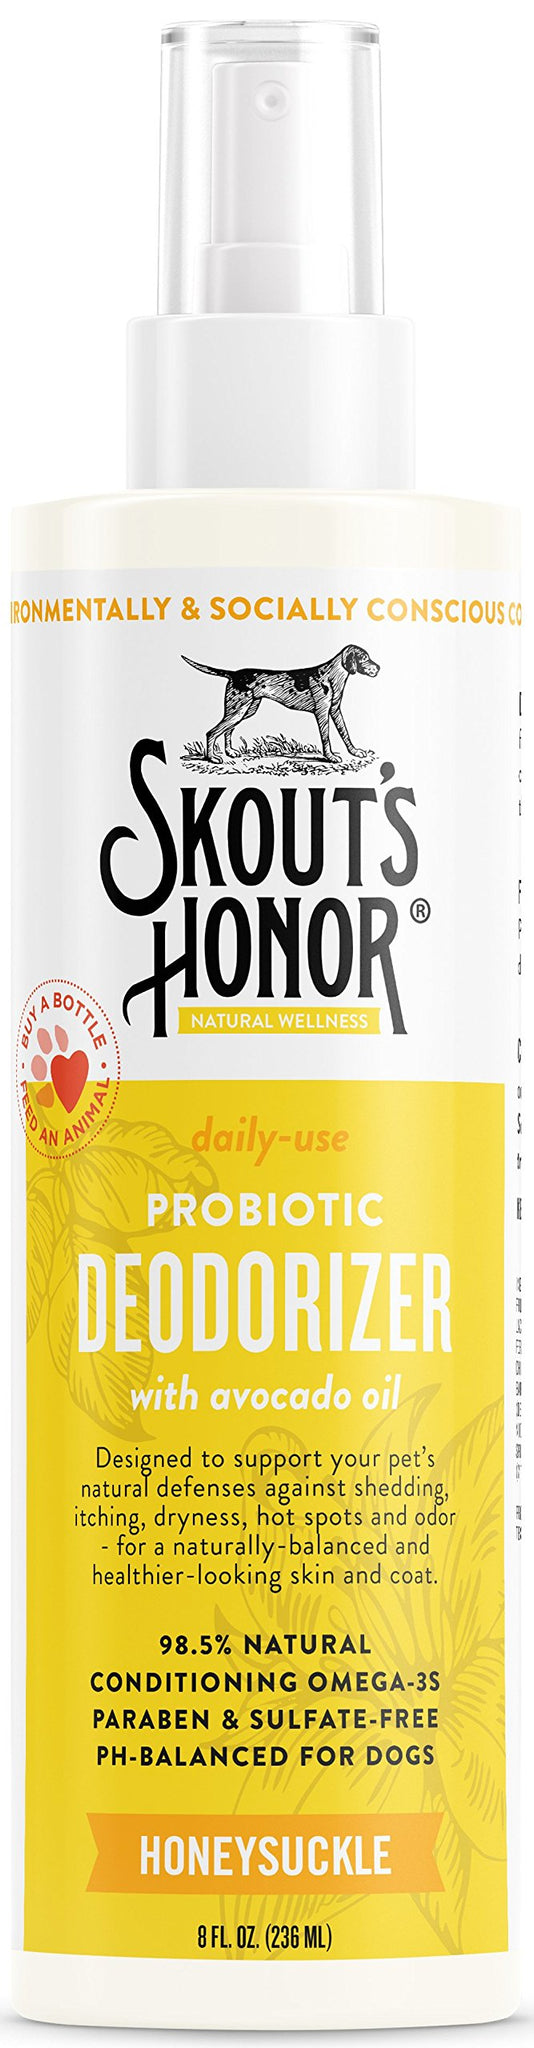 SKOUT'S HONOR: Probiotic Deodorizer - 8 fl. oz. - Hydrates and Deodorizes Fur, Supports Pet's Natural Defenses, PH-Balanced and Sulfate Free - Avocado Oil